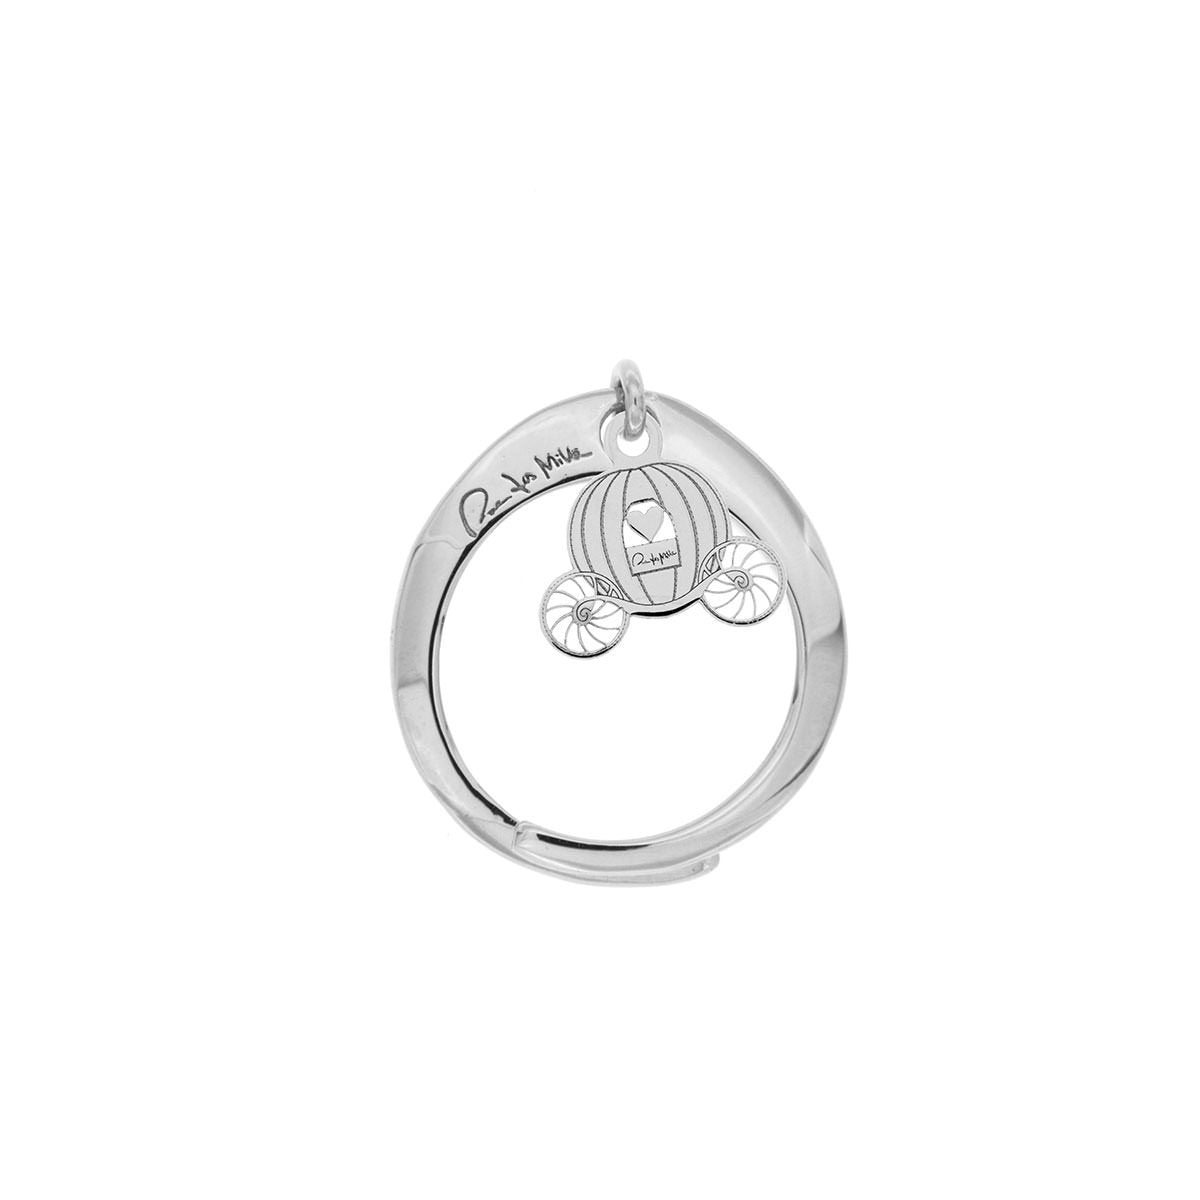 Rings - Carriage Rigid Ring - 2 | Rue des Mille